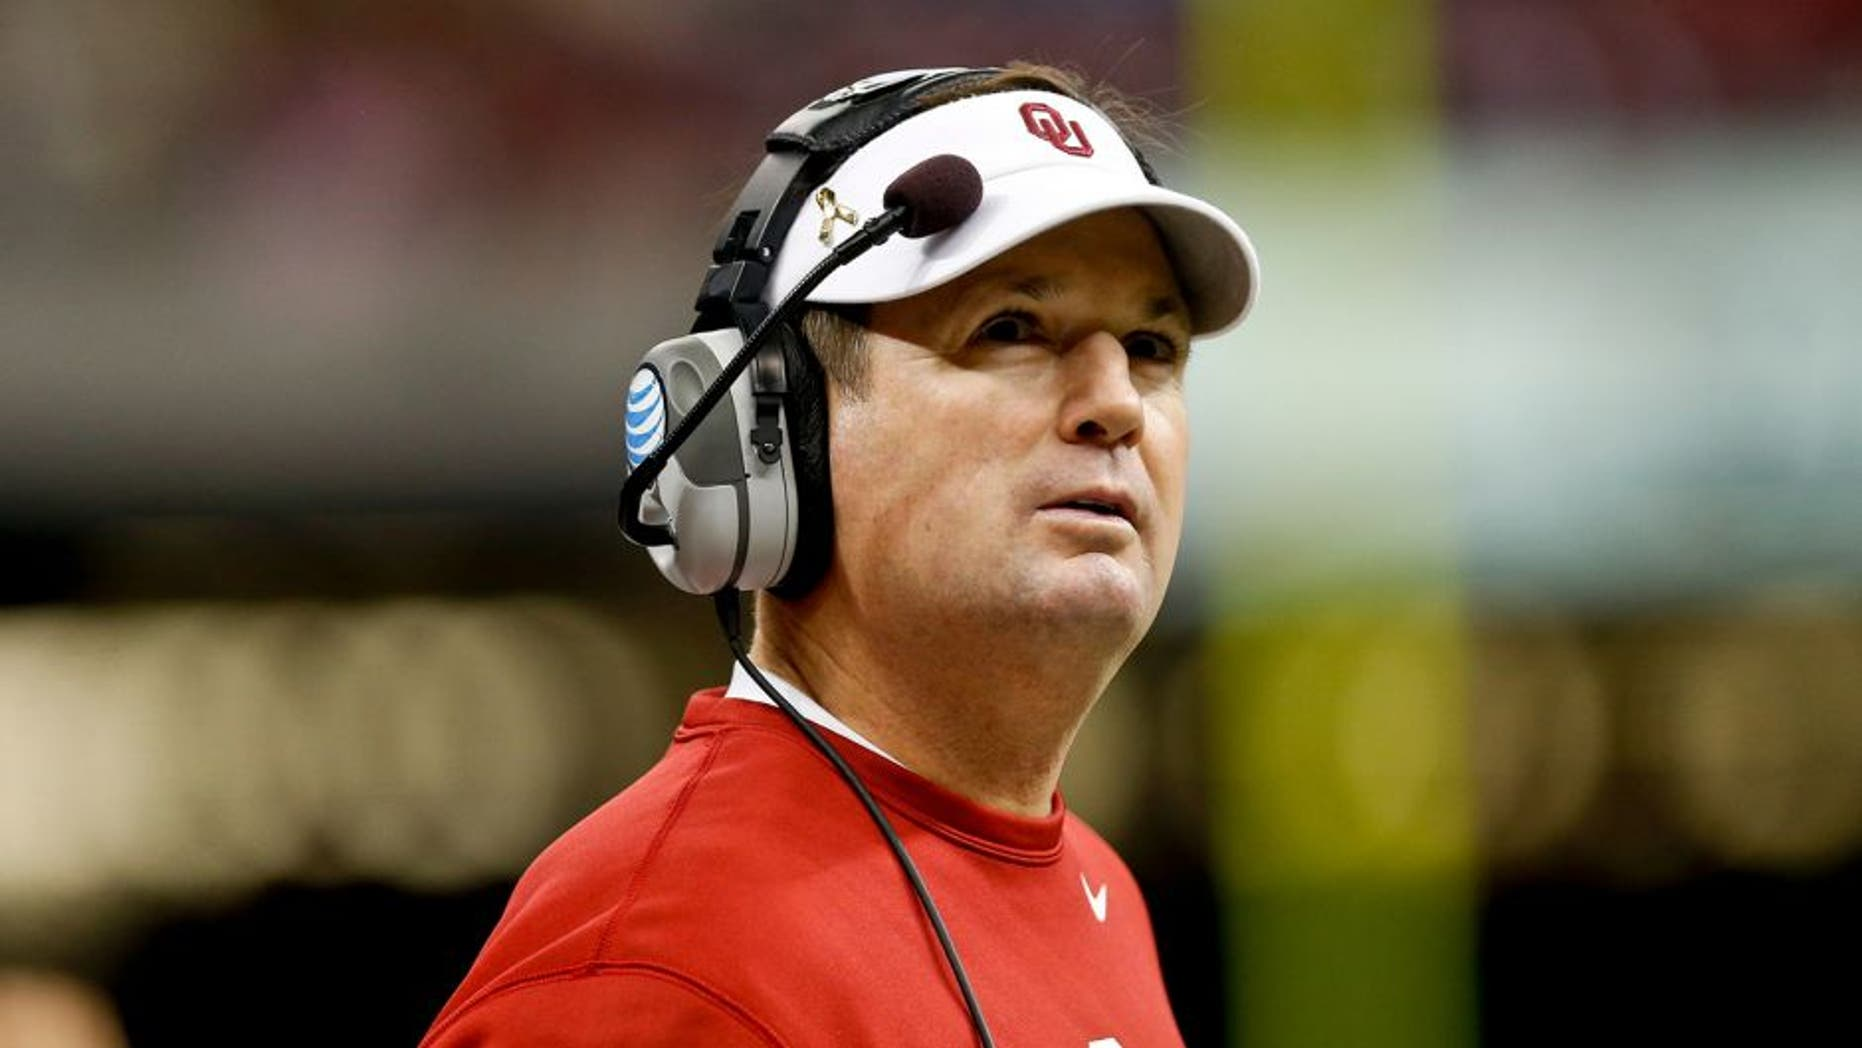 Jan 2, 2014; New Orleans, LA, USA; Oklahoma Sooners head coach Bob Stoops against the Alabama Crimson Tide during the second half of a game at the Mercedes-Benz Superdome. Oklahoma defeated Alabama 45-31. Mandatory Credit: Derick E. Hingle-USA TODAY Sports